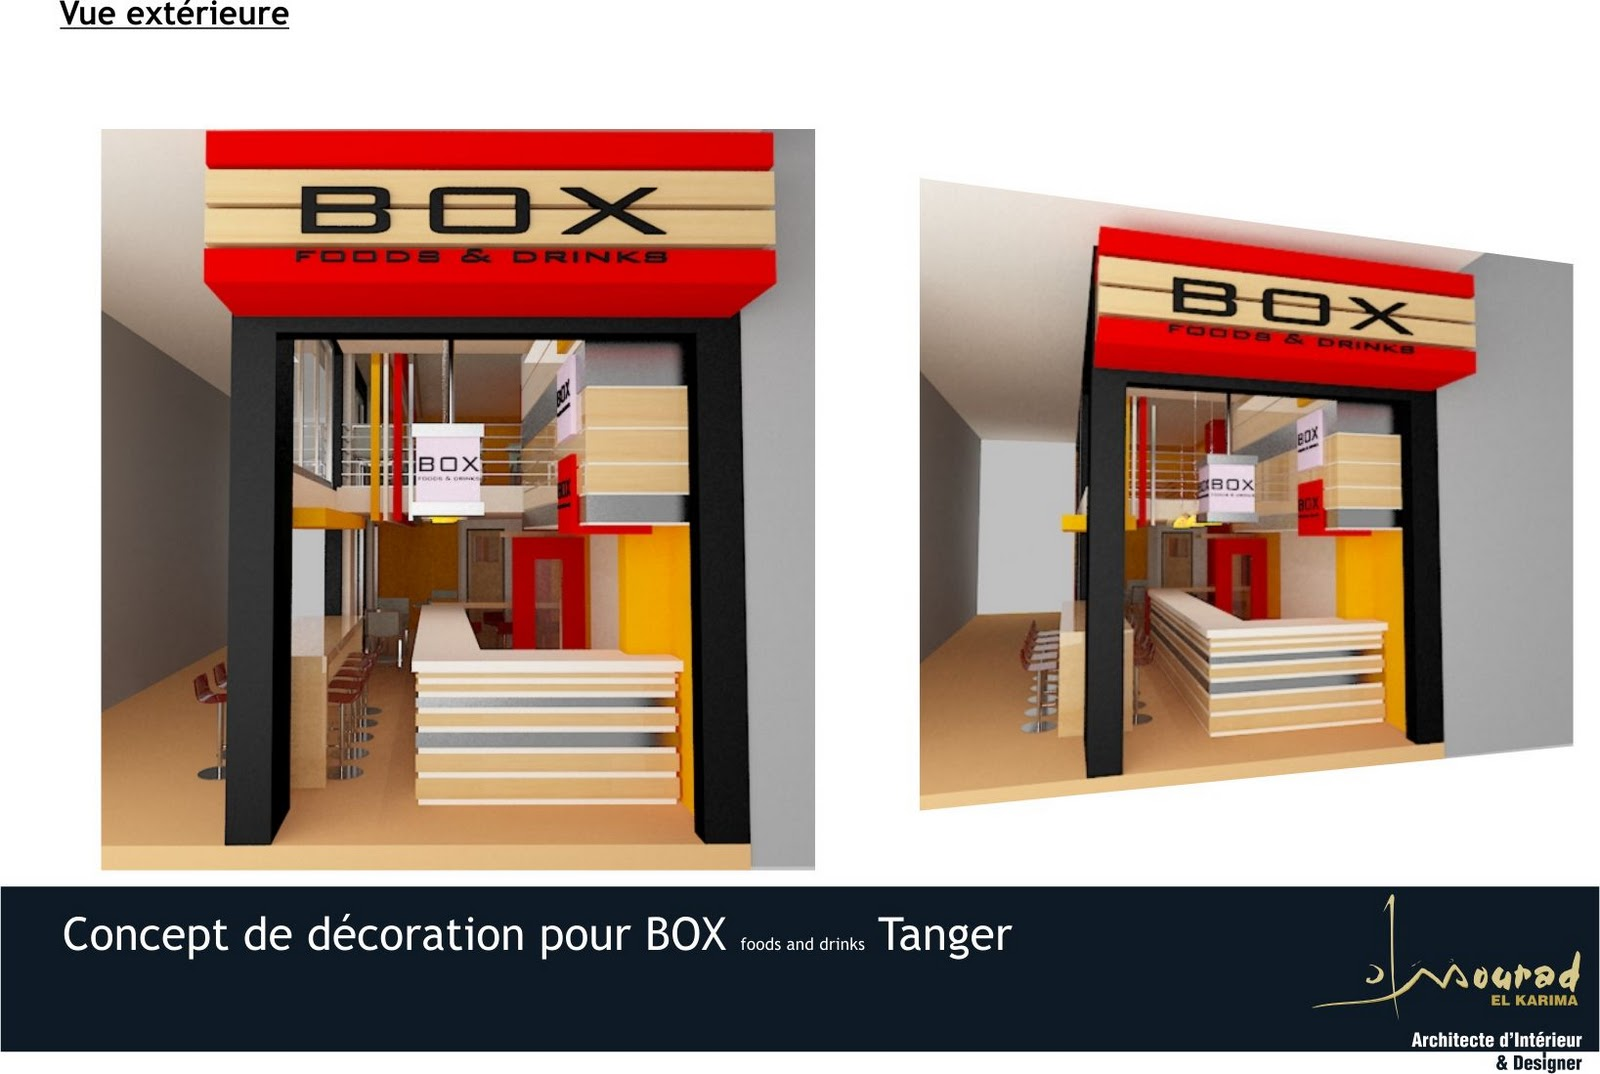 Decoration D'interieur Tanger Relooking Pour Un Box Foods Drinks Tanger Mourad El